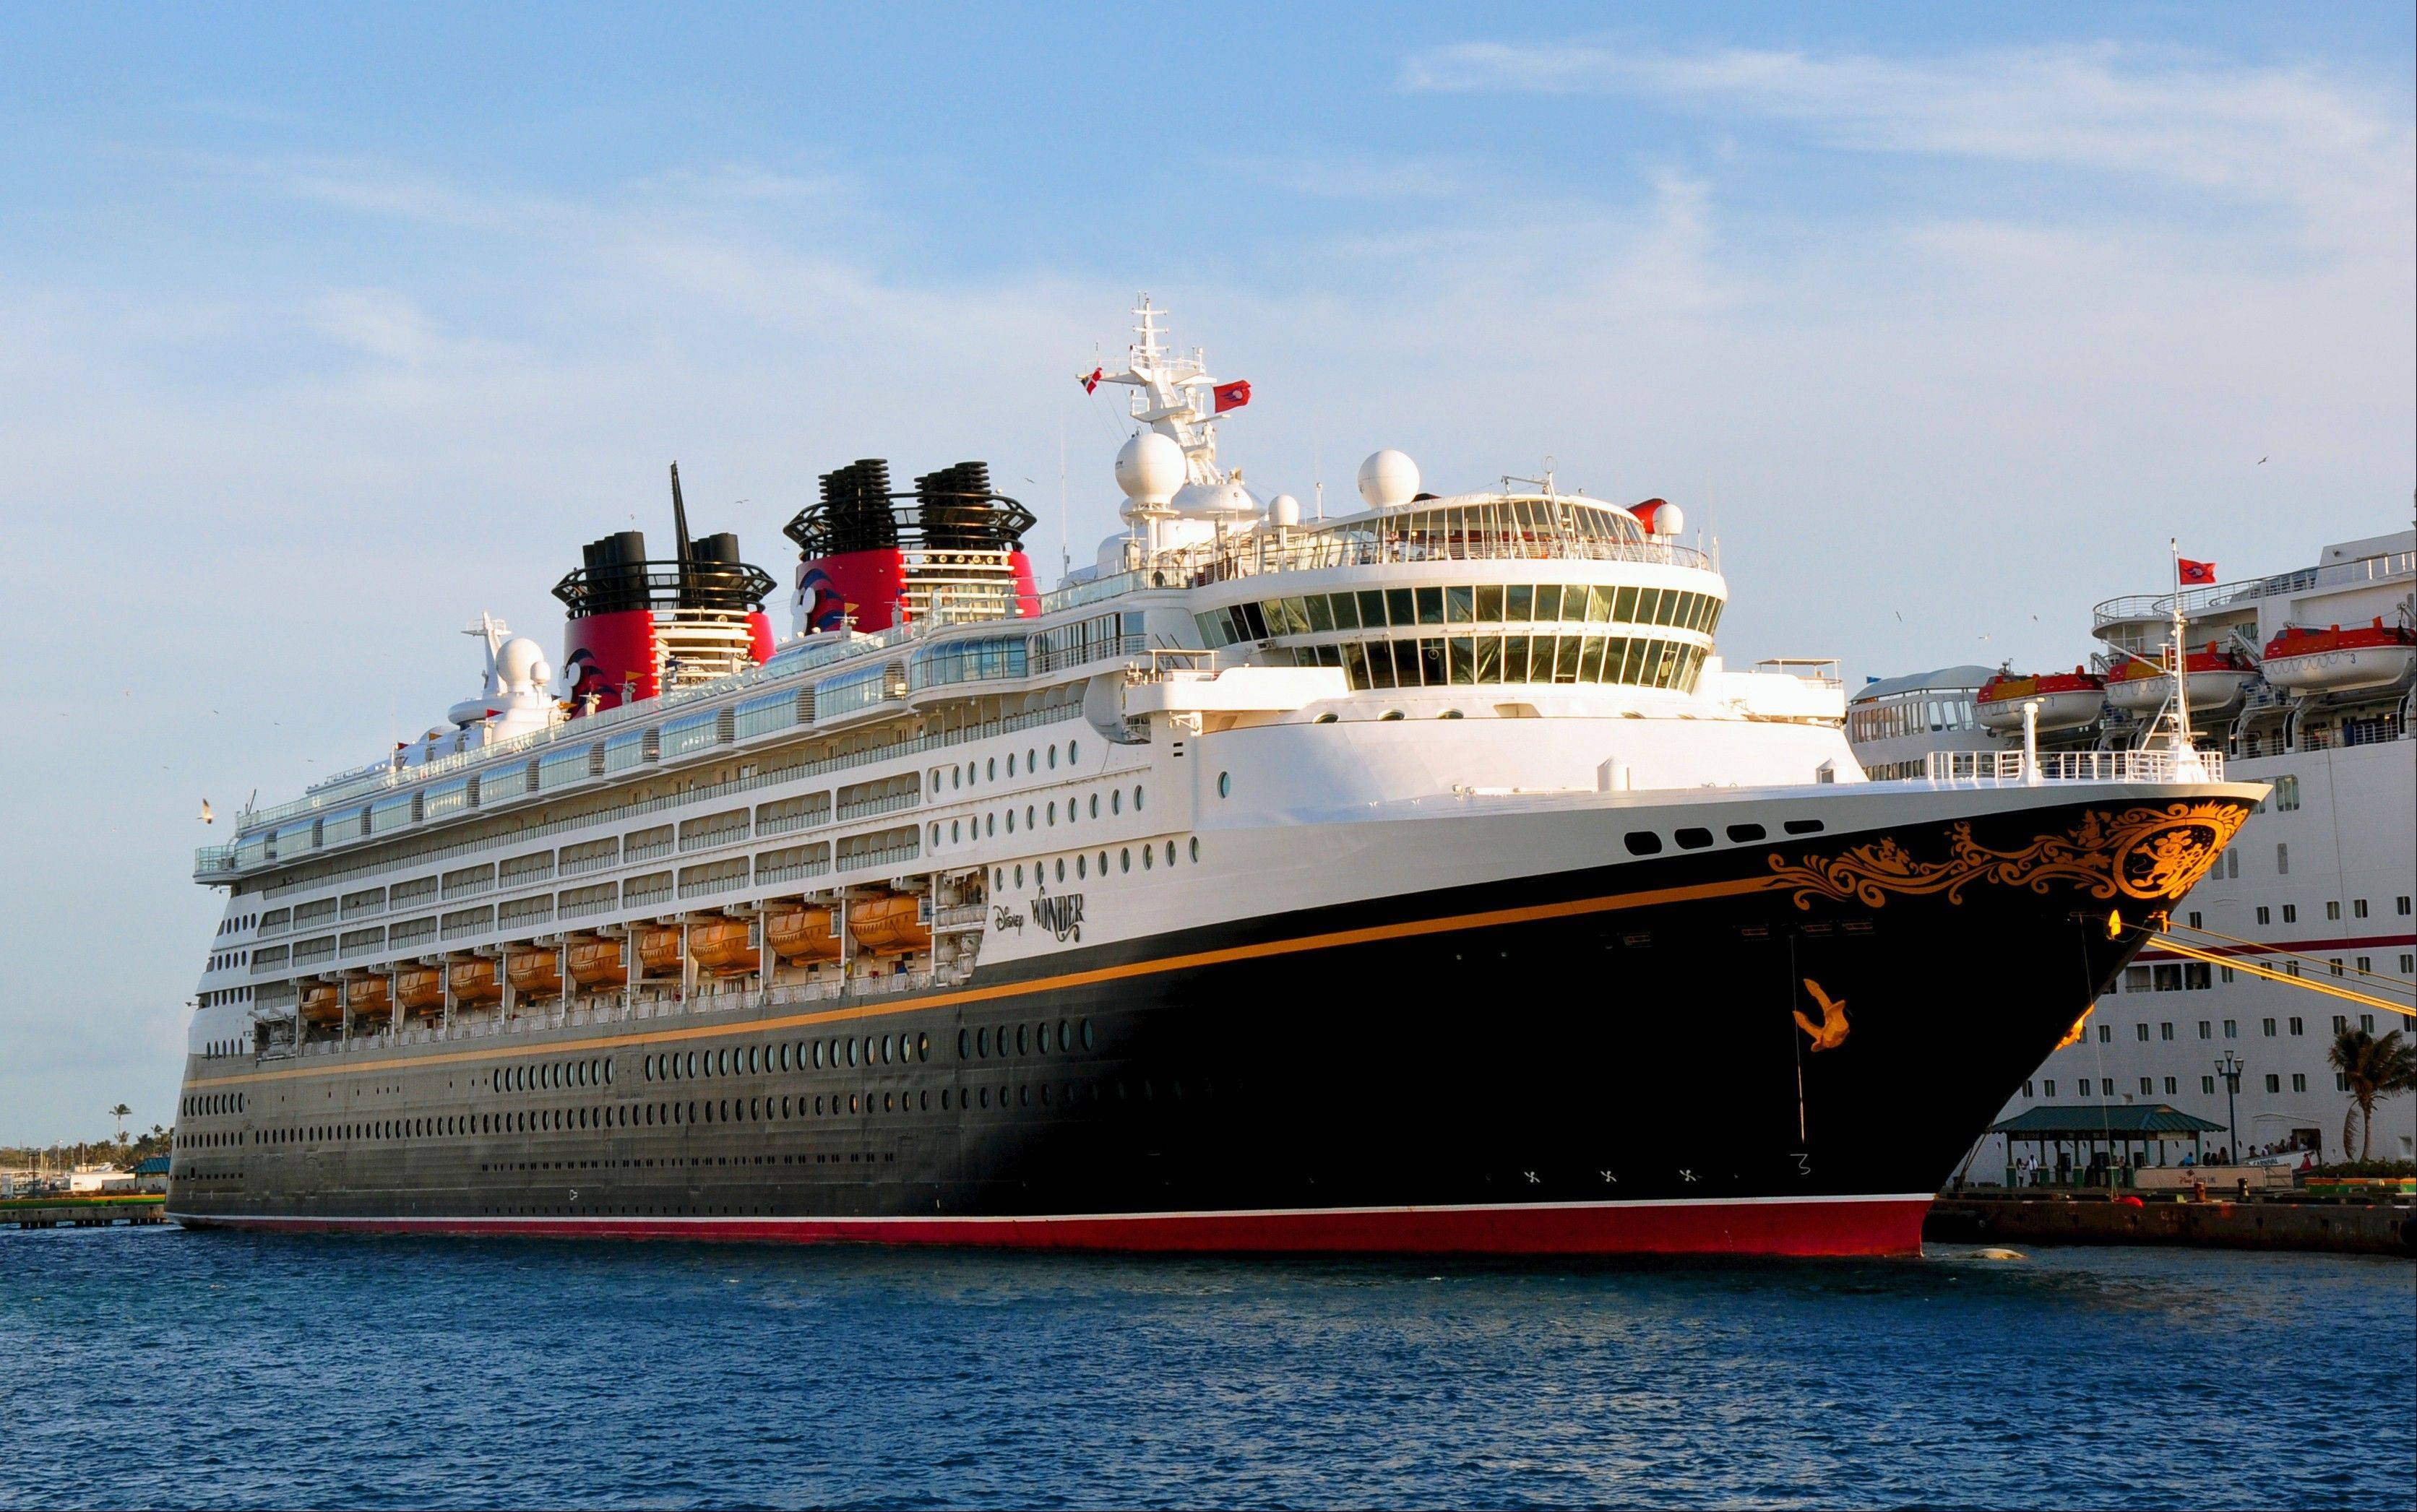 The Disney Wonder calls at Nassau, Bahamas, on four-night cruises from Miami. The ship is one of four operated by Disney Cruise Line.